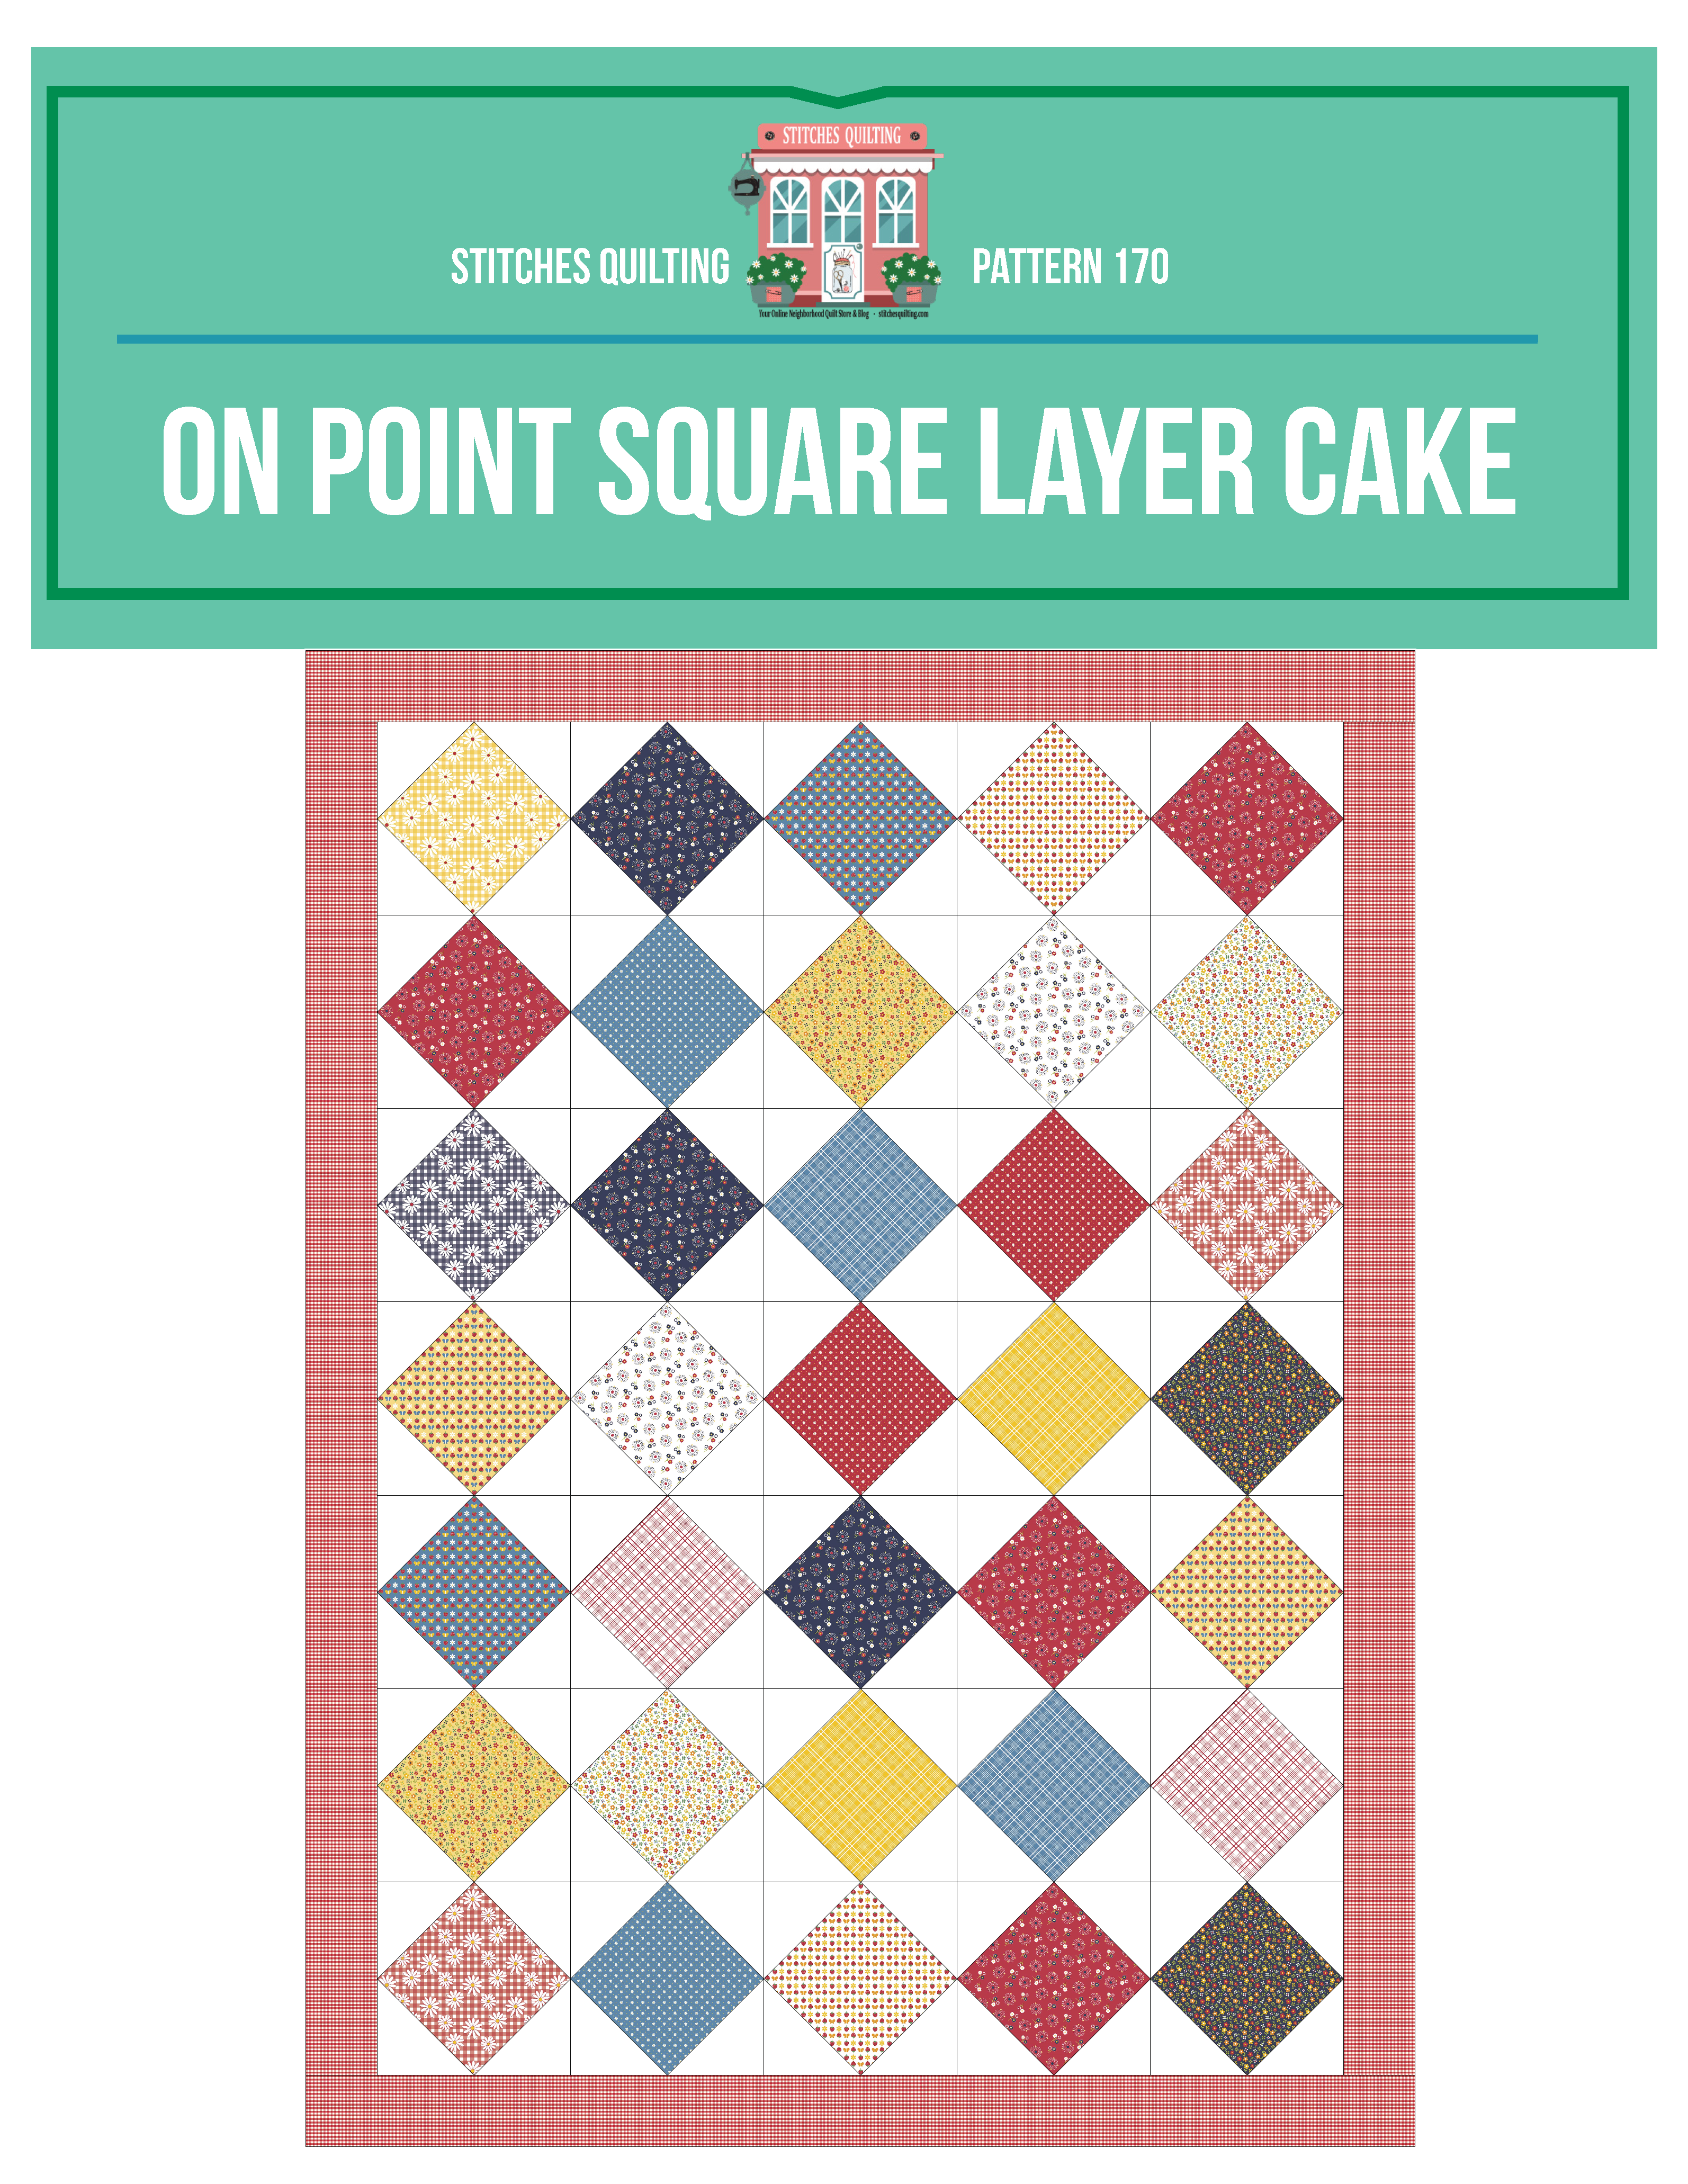 On Point 10 Inch Layer Cake Quilt Complete Tutorial Gingham Girls Fabric Amy Smart Quilt designed by Stitches Quilting Deanna Wall